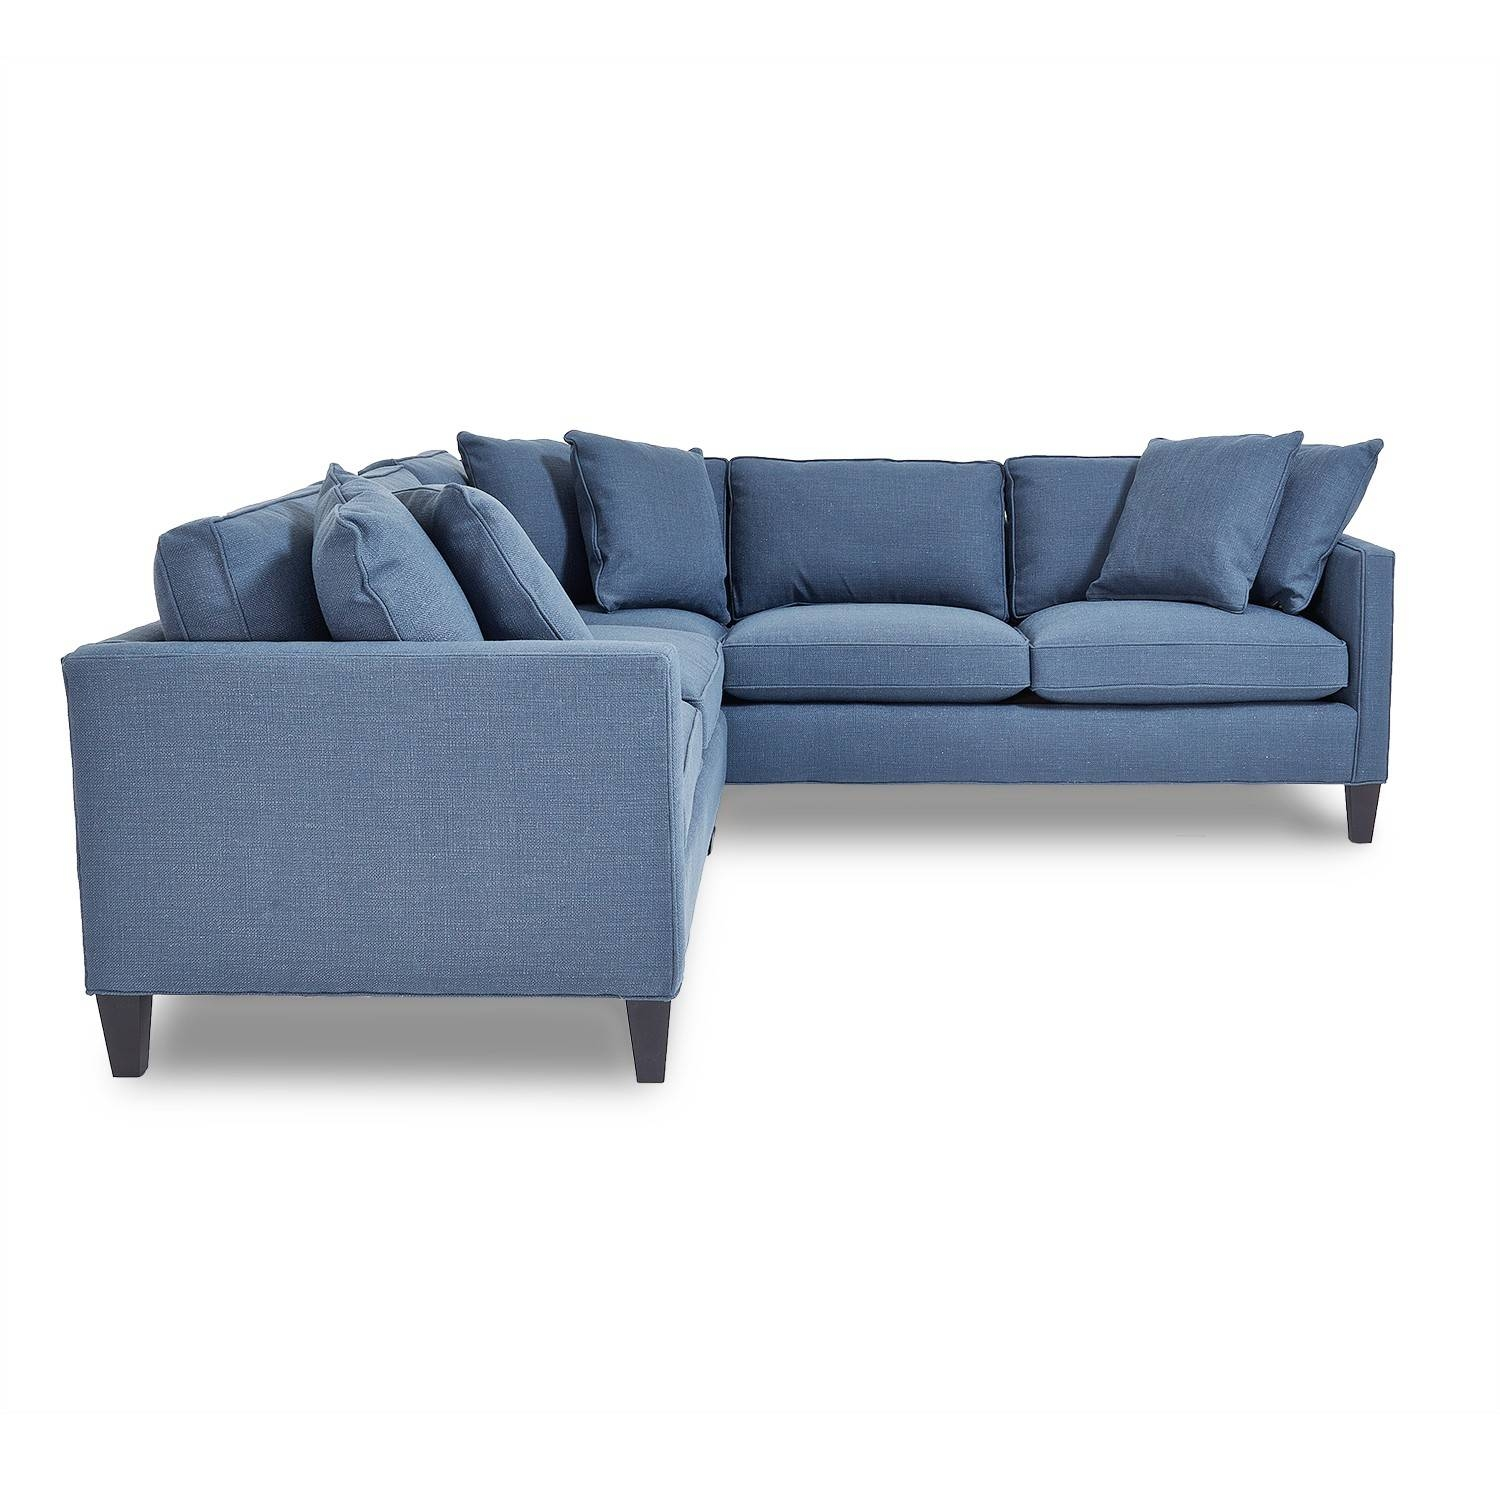 Living Room: Exciting Denim Sectional Sofa Design For Living Room throughout 3 Piece Sectional Sleeper Sofa (Image 21 of 30)